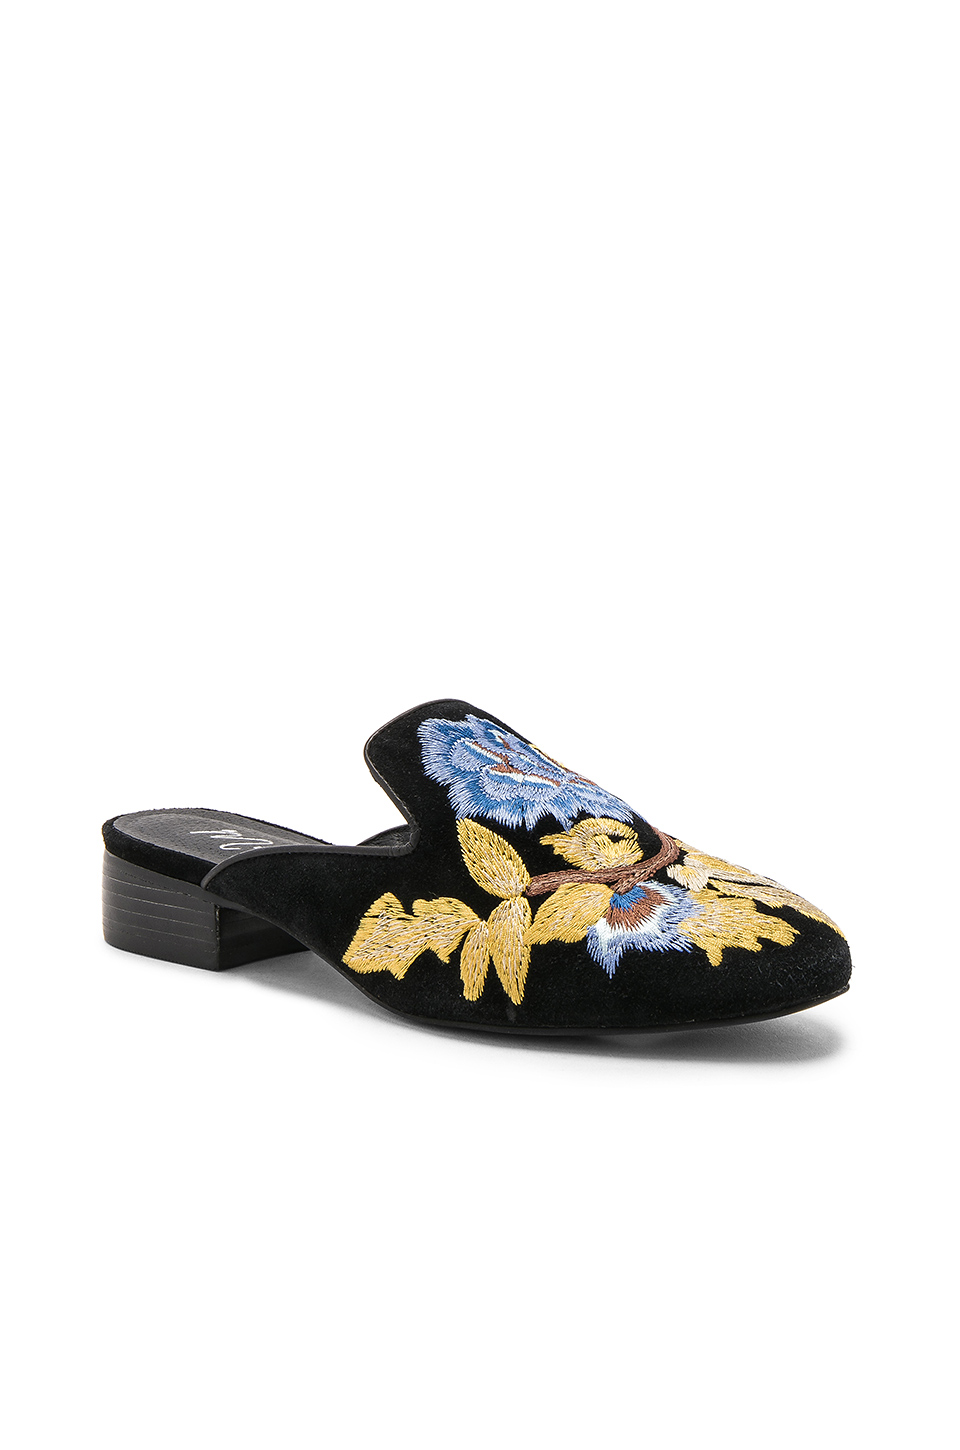 Matisse Bianca Mule in Black